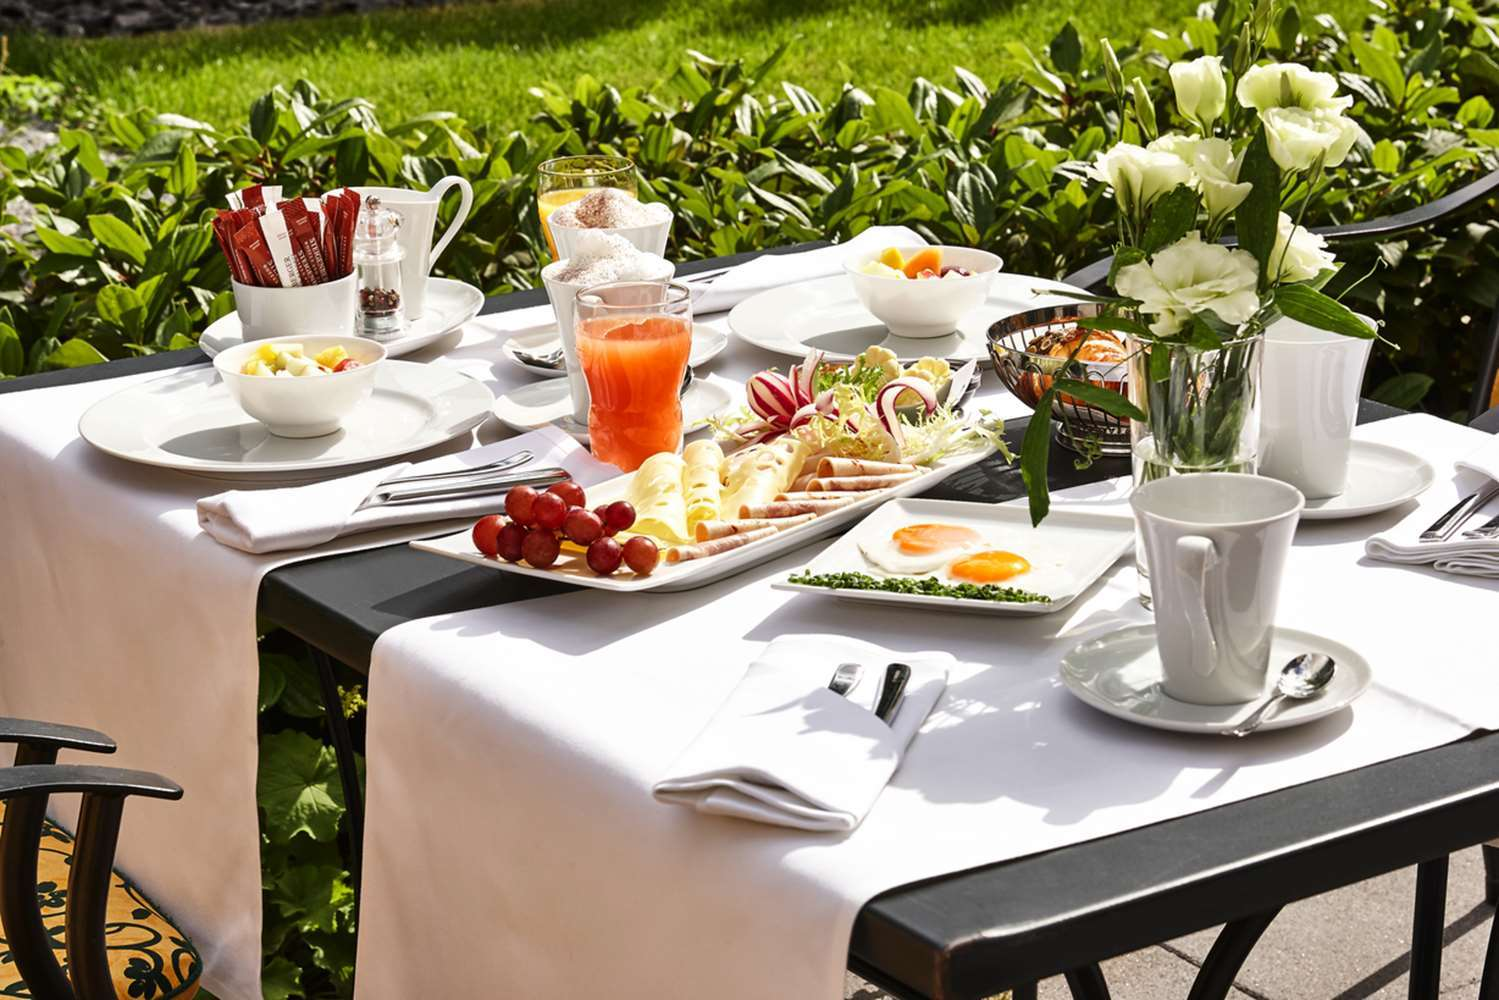 Bad Homburg Hotels In Bad Homburg Vor Der Höhe Explore The Spa City